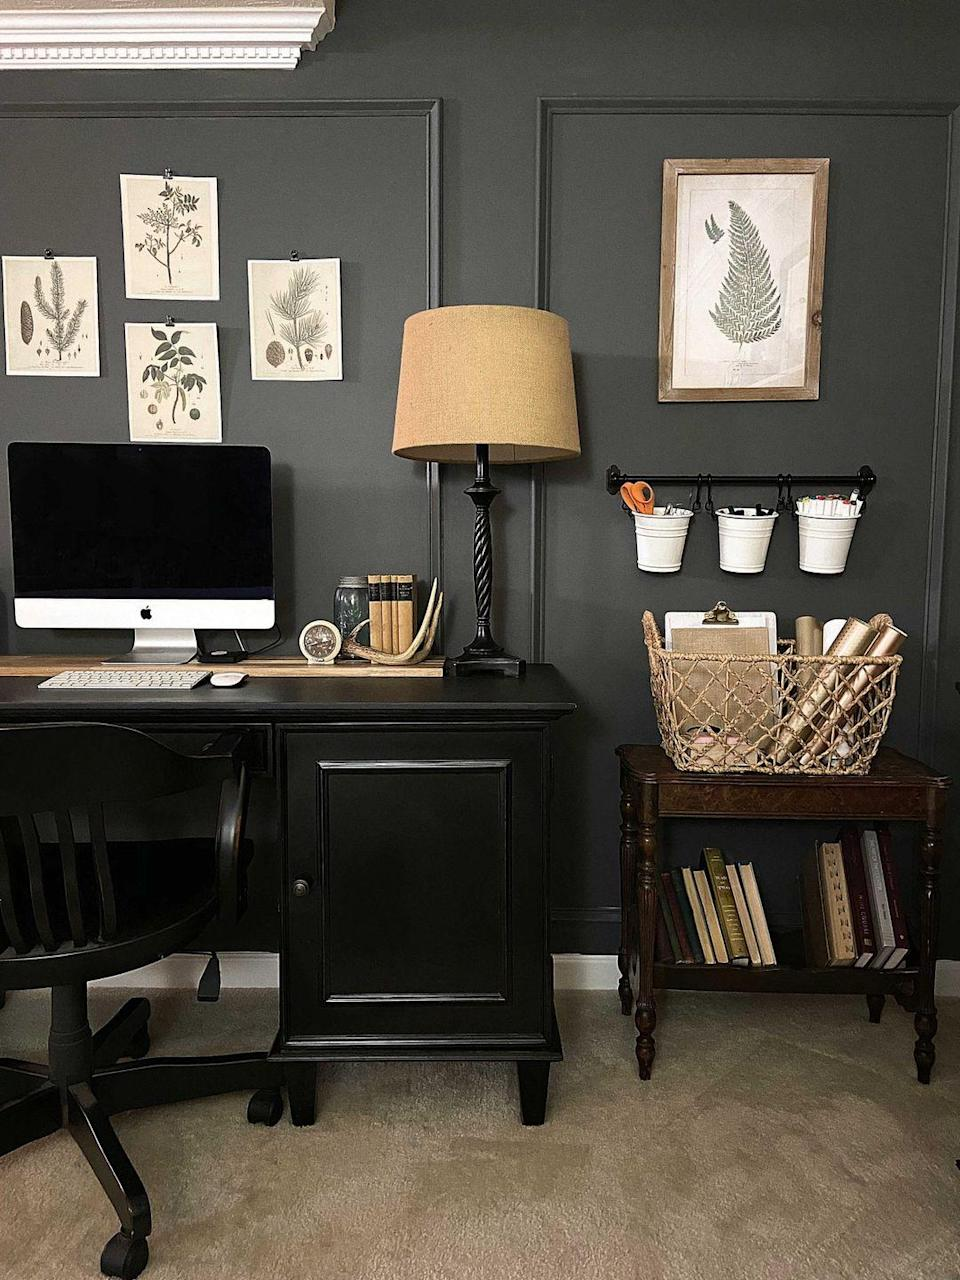 "<p>Working (or crafting!) from home without a defined workspace can make your job feel way more stressful. Enter this sophisticated basement office/craftroom, which features an accent wall in a soothing stone tone. </p><p><strong>See more at <a href=""https://www.snazzylittlethings.com/accent-wall-ideas/"" rel=""nofollow noopener"" target=""_blank"" data-ylk=""slk:Snazzy Little Things"" class=""link rapid-noclick-resp"">Snazzy Little Things</a>. </strong></p><p><a class=""link rapid-noclick-resp"" href=""https://go.redirectingat.com?id=74968X1596630&url=https%3A%2F%2Fwww.walmart.com%2Fip%2FGlidden-One-Coat-Interior-Paint-Primer-Stepping-Stone%2F289554052&sref=https%3A%2F%2Fwww.thepioneerwoman.com%2Fhome-lifestyle%2Fdecorating-ideas%2Fg34763691%2Fbasement-ideas%2F"" rel=""nofollow noopener"" target=""_blank"" data-ylk=""slk:SHOP PAINT"">SHOP PAINT</a></p>"